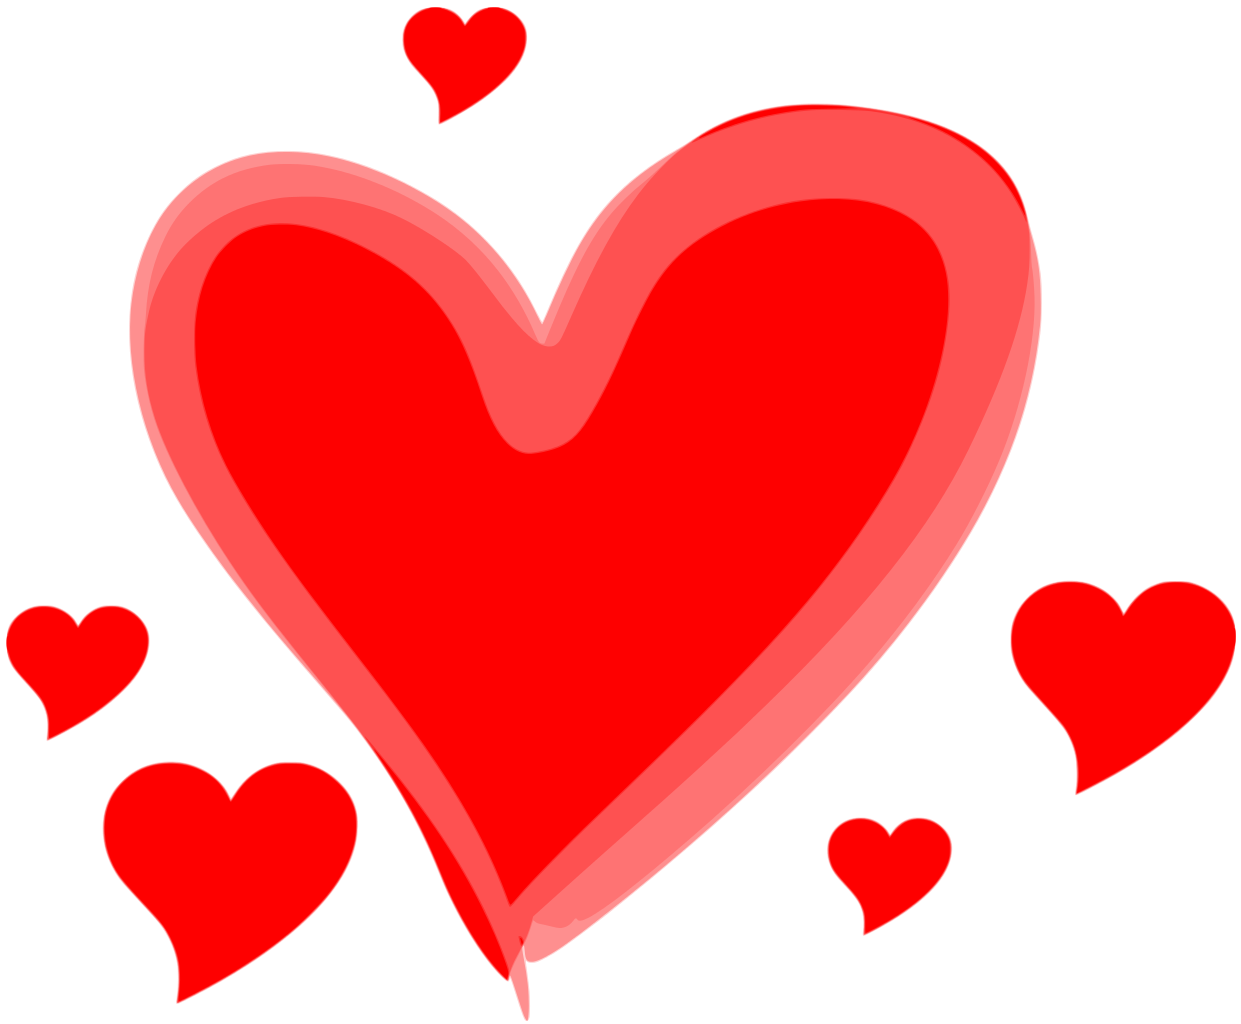 Heart love png. File drawn hearts svg